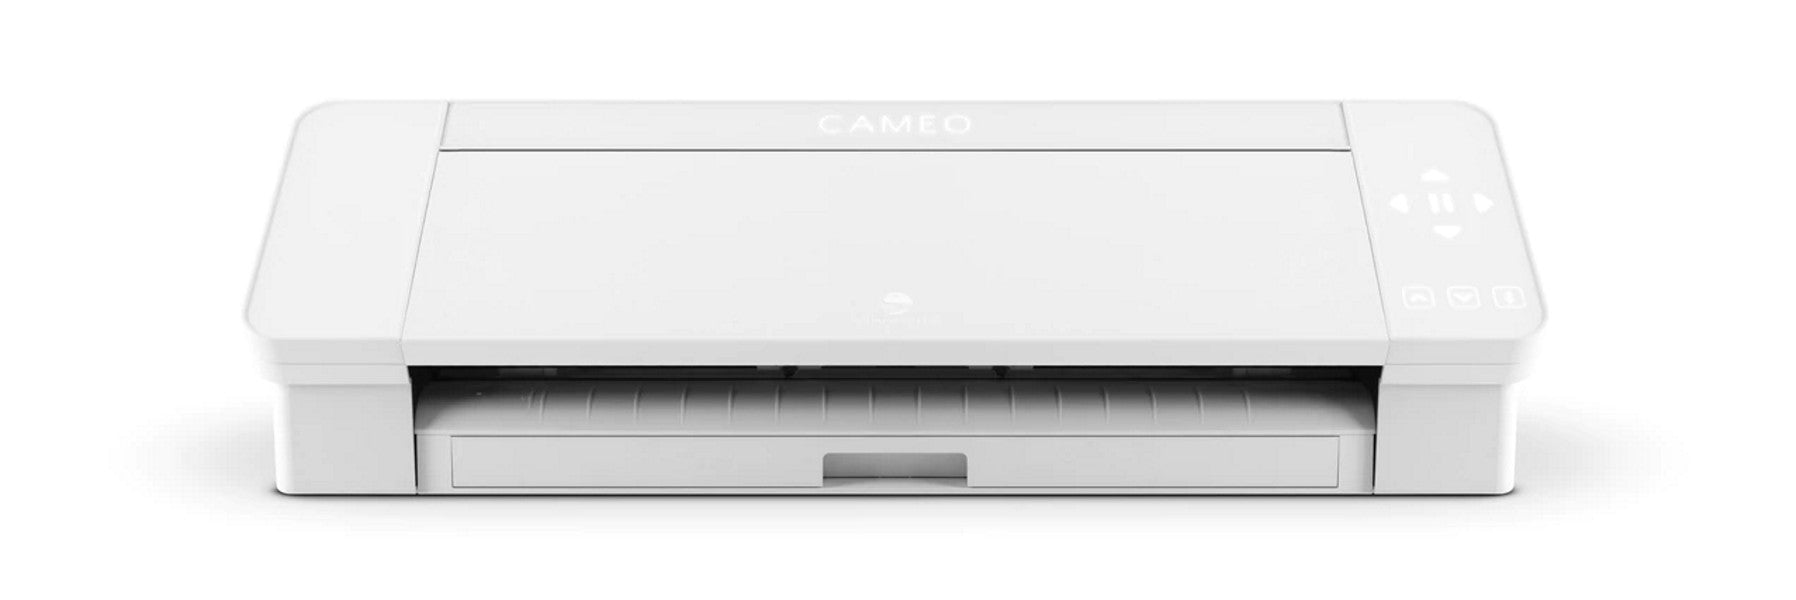 Machine Accessories | Silhouette Cameo